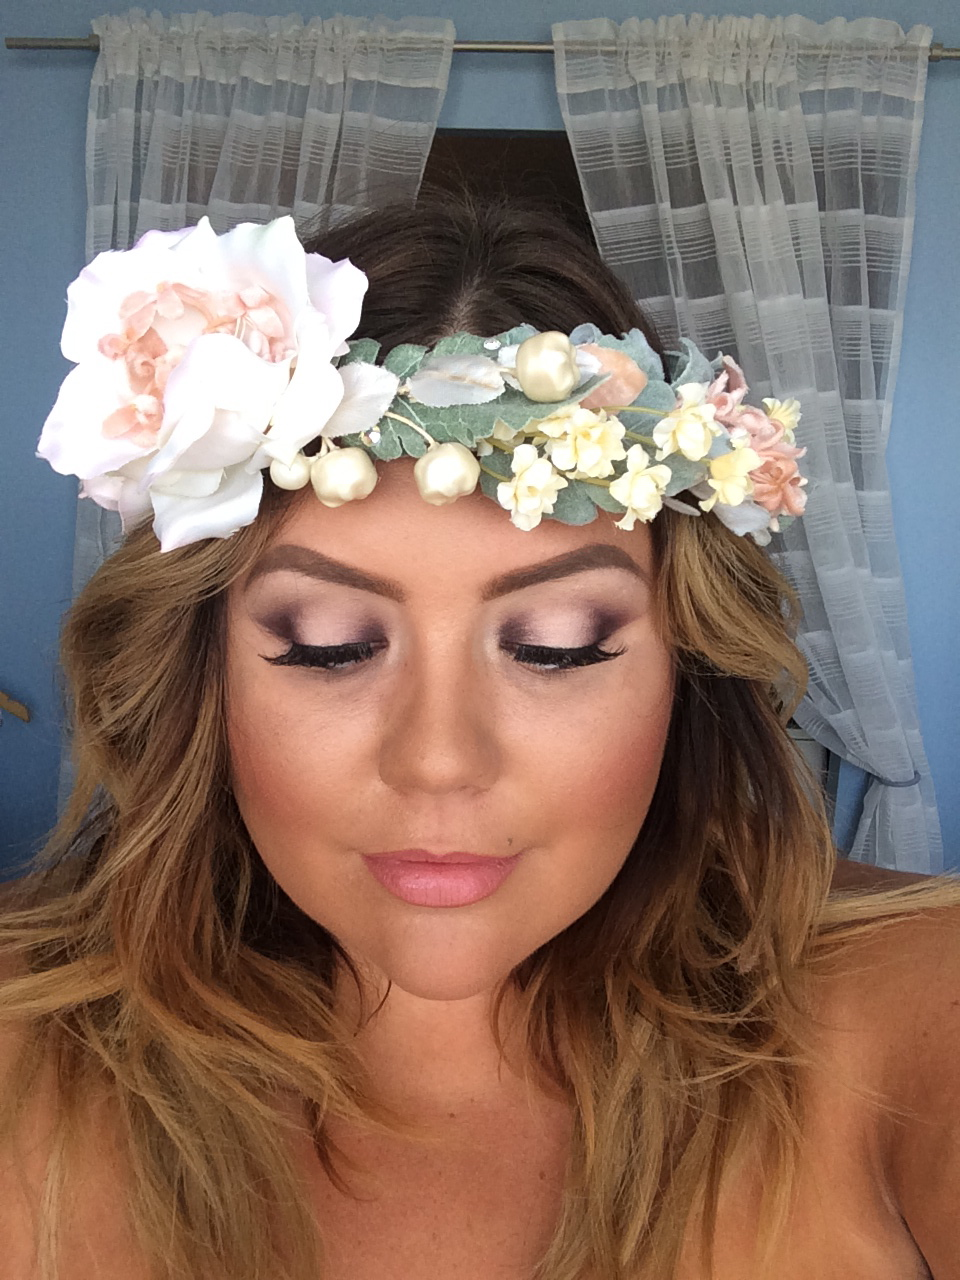 Learning Bridal Makeup with Makeup artist Brittany Hall: Finished Look